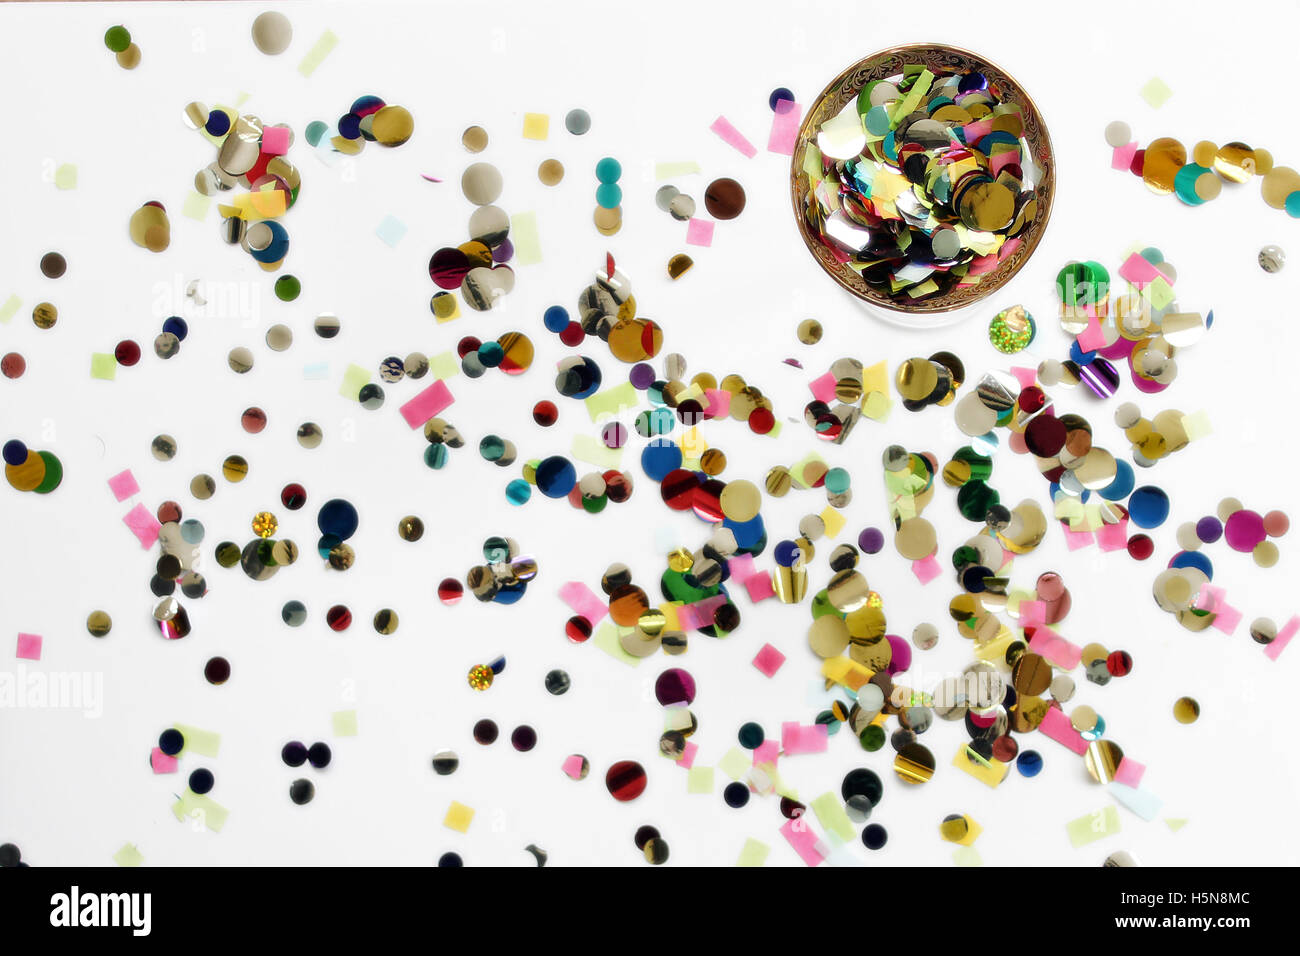 Over head image of a cocktail glass filled with confetti. Confetti spilled on table top - Stock Image